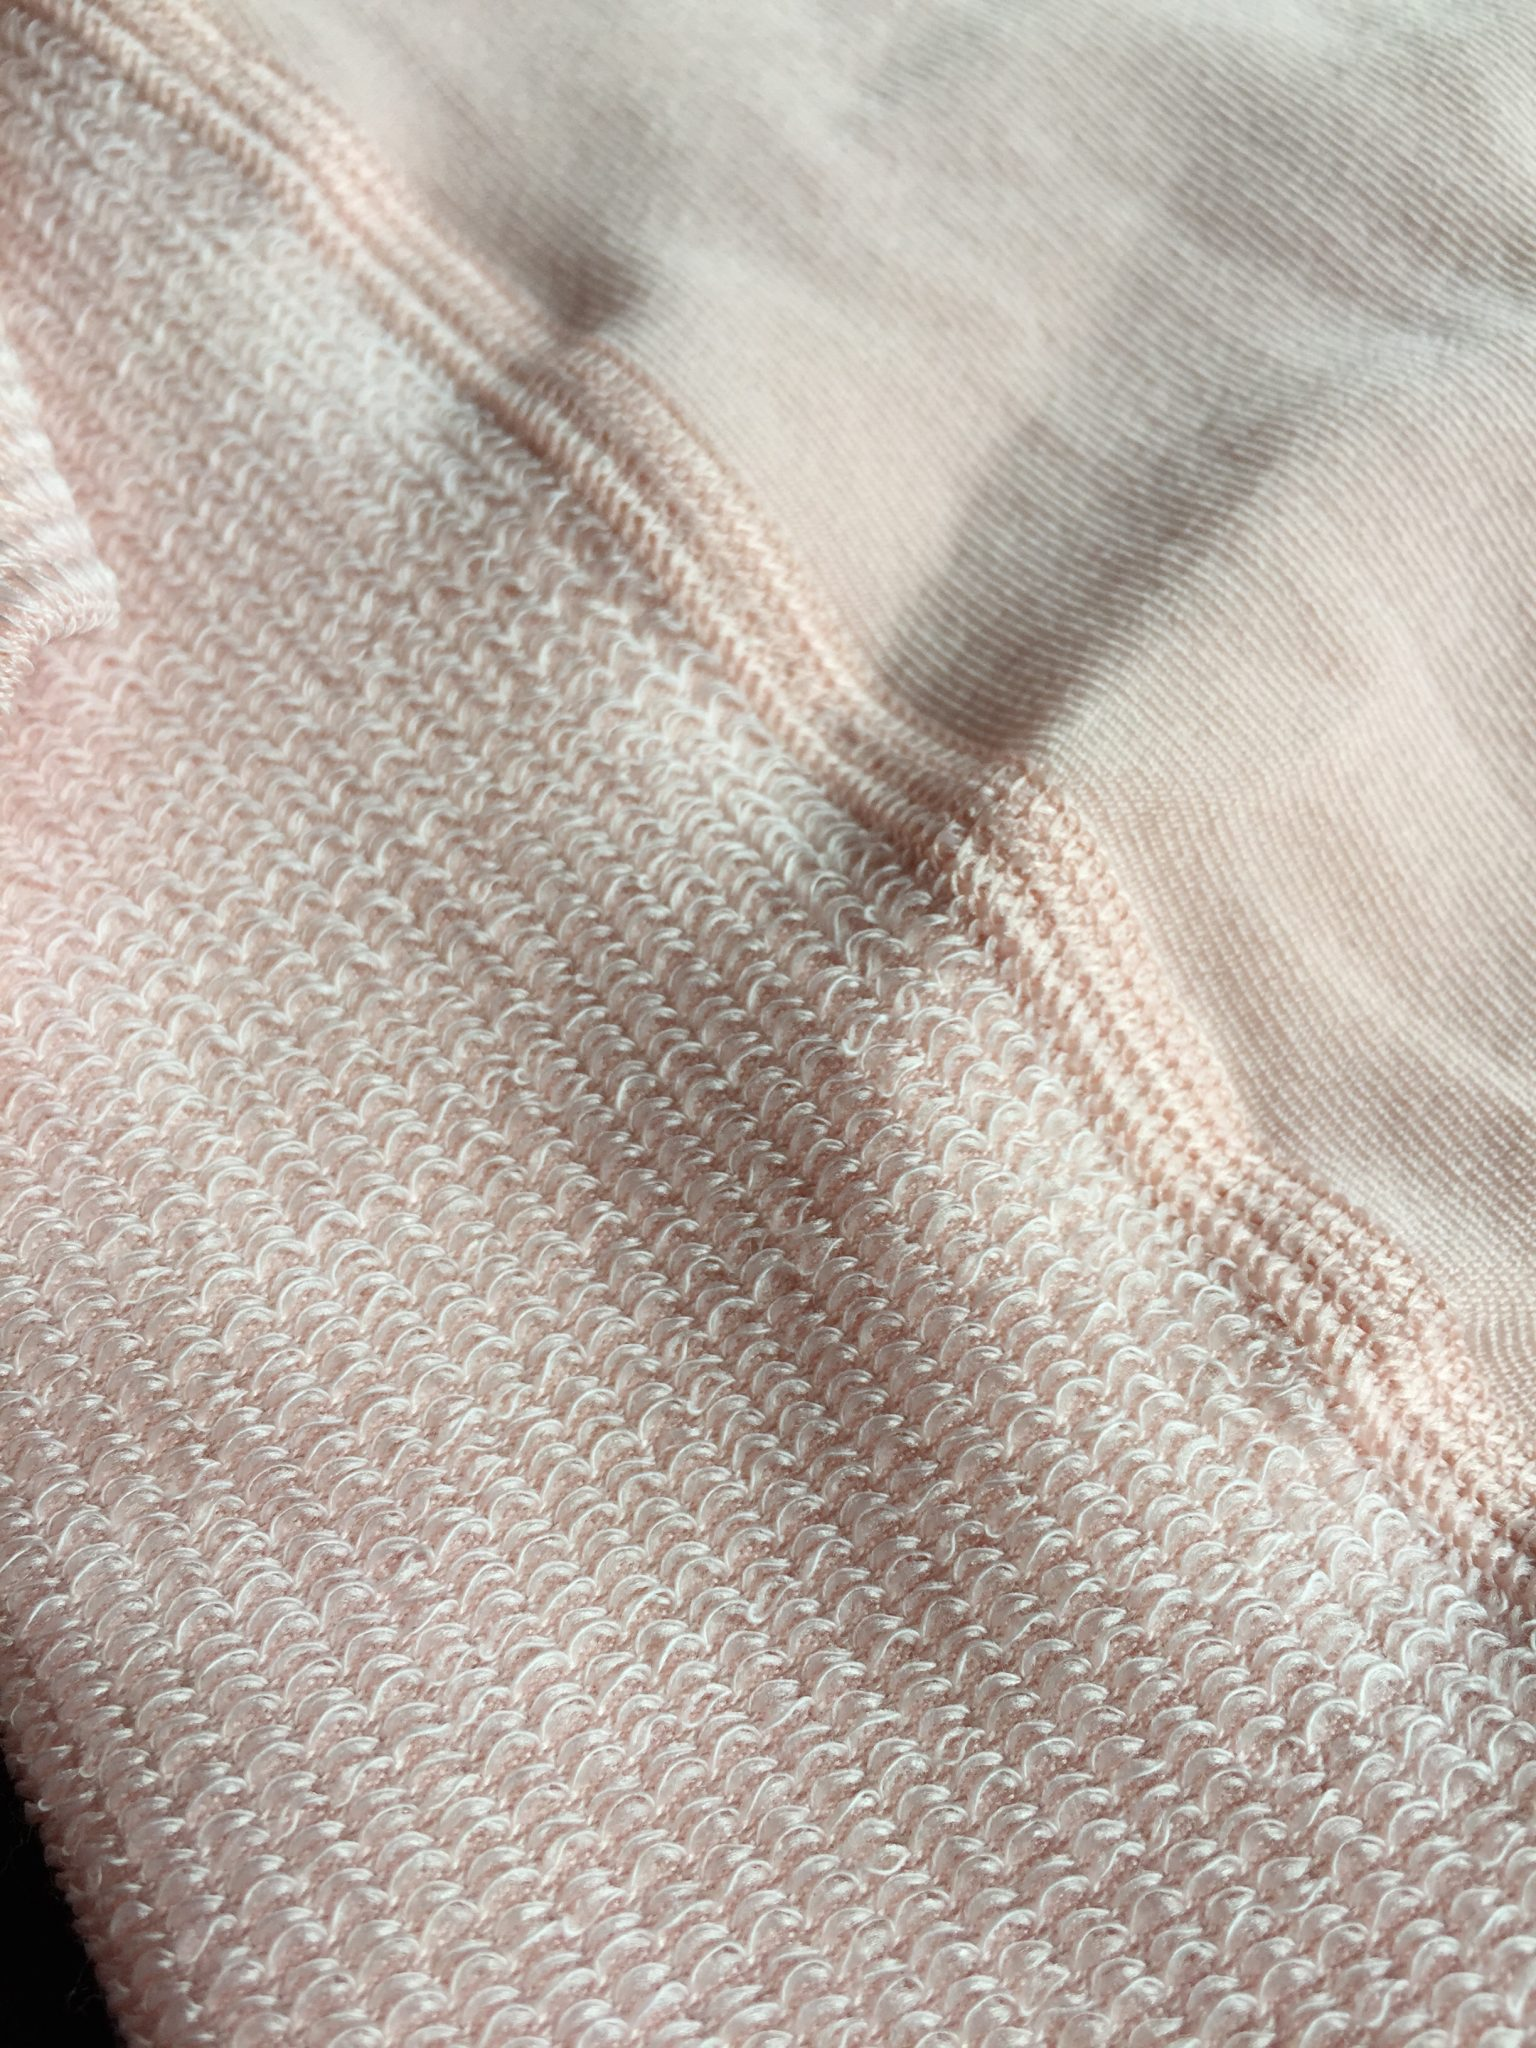 cotten gusset and flat seams